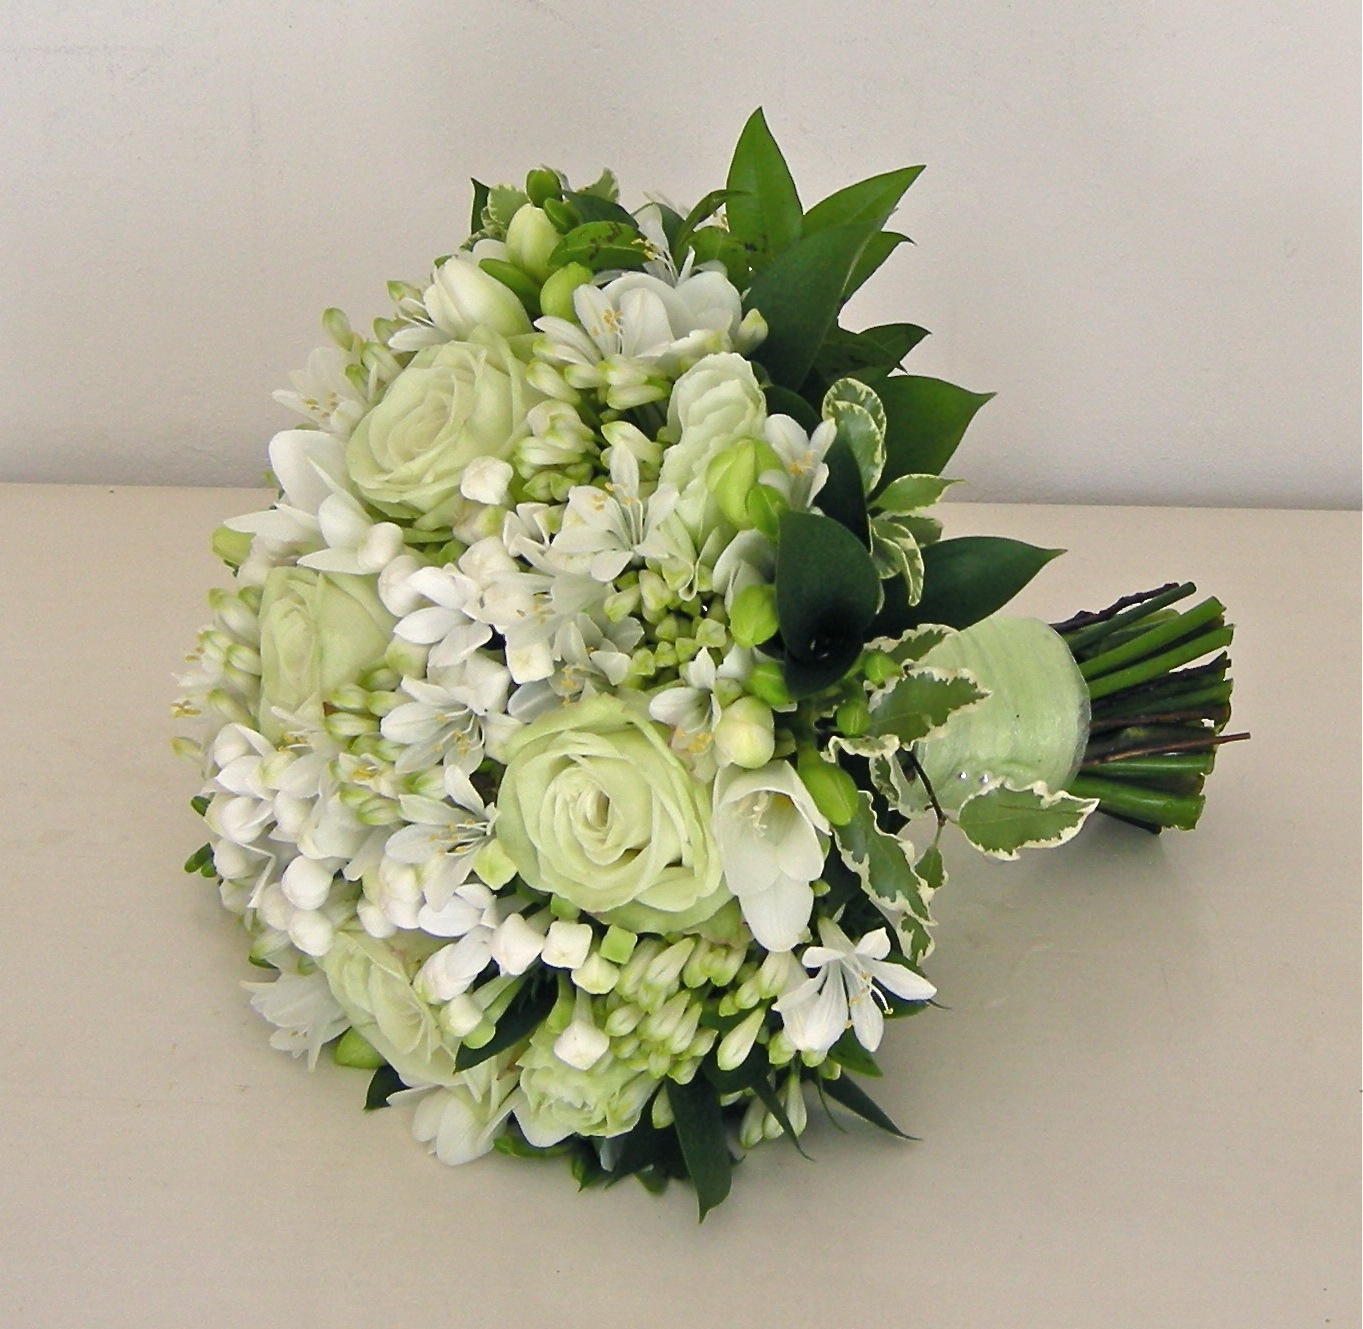 Flower picture inspirations alisons pale green and white wedding flower picture inspirations alisons pale green and white wedding flowers potters heron ampfield mightylinksfo